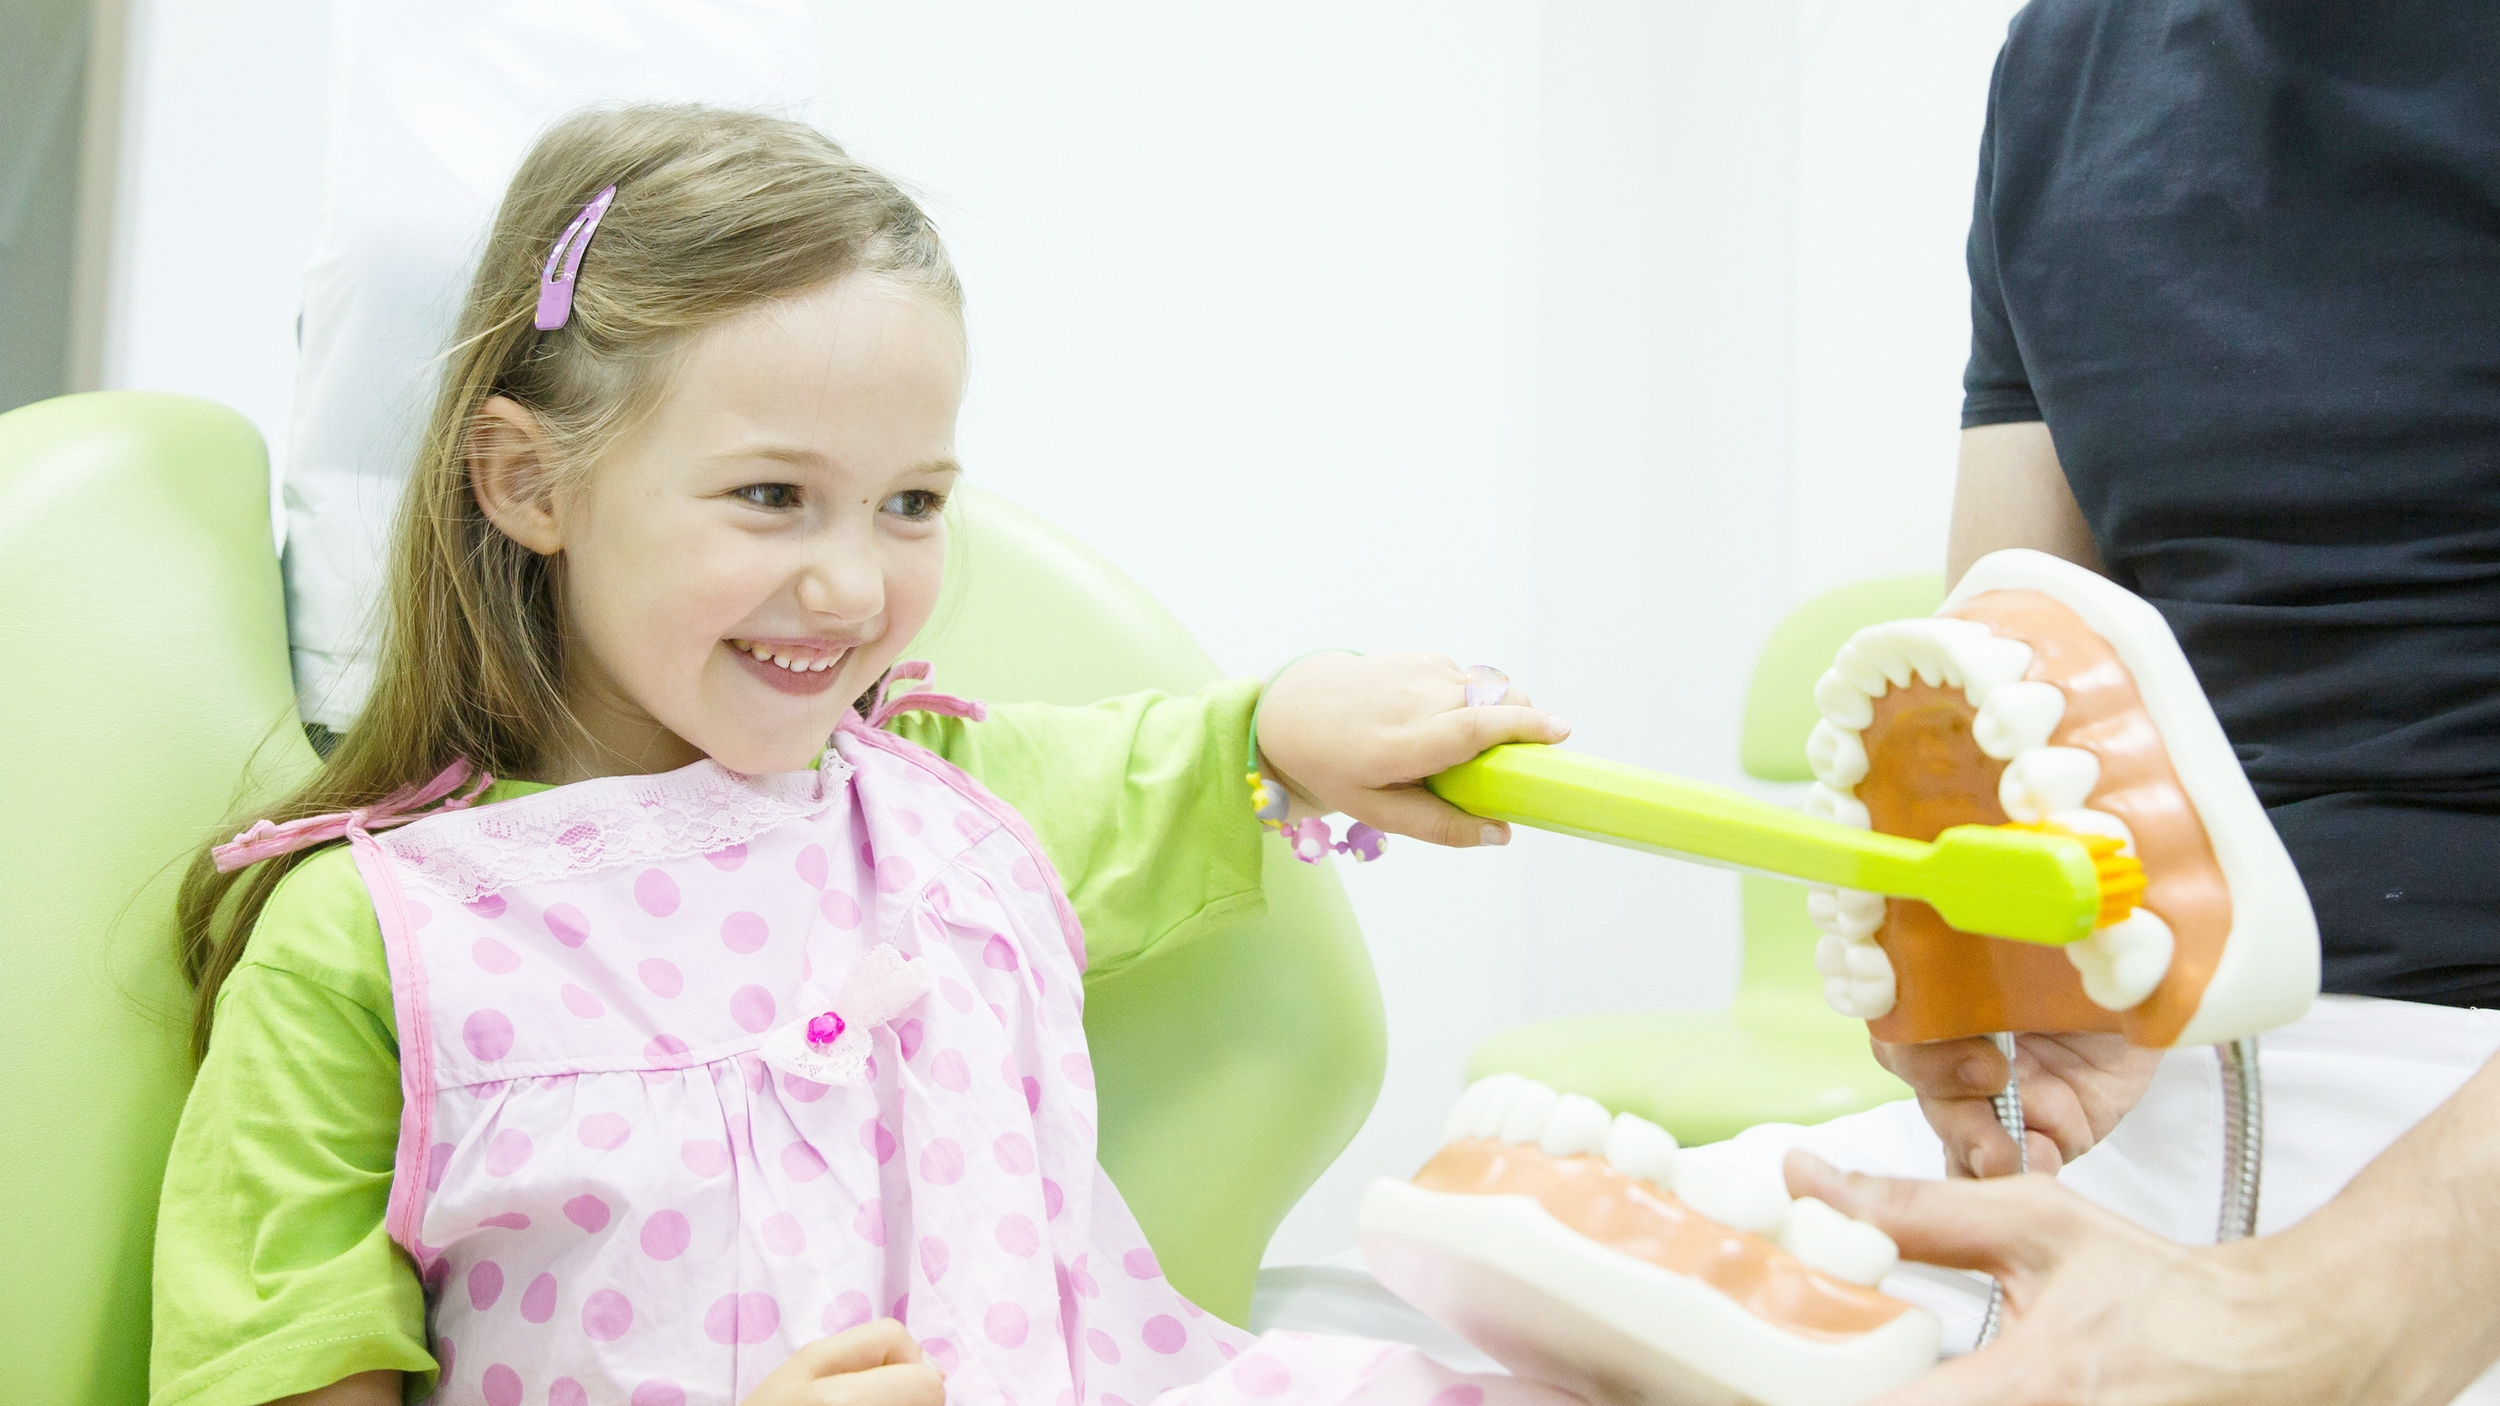 Children's Dentistry - New Families and Growing Children